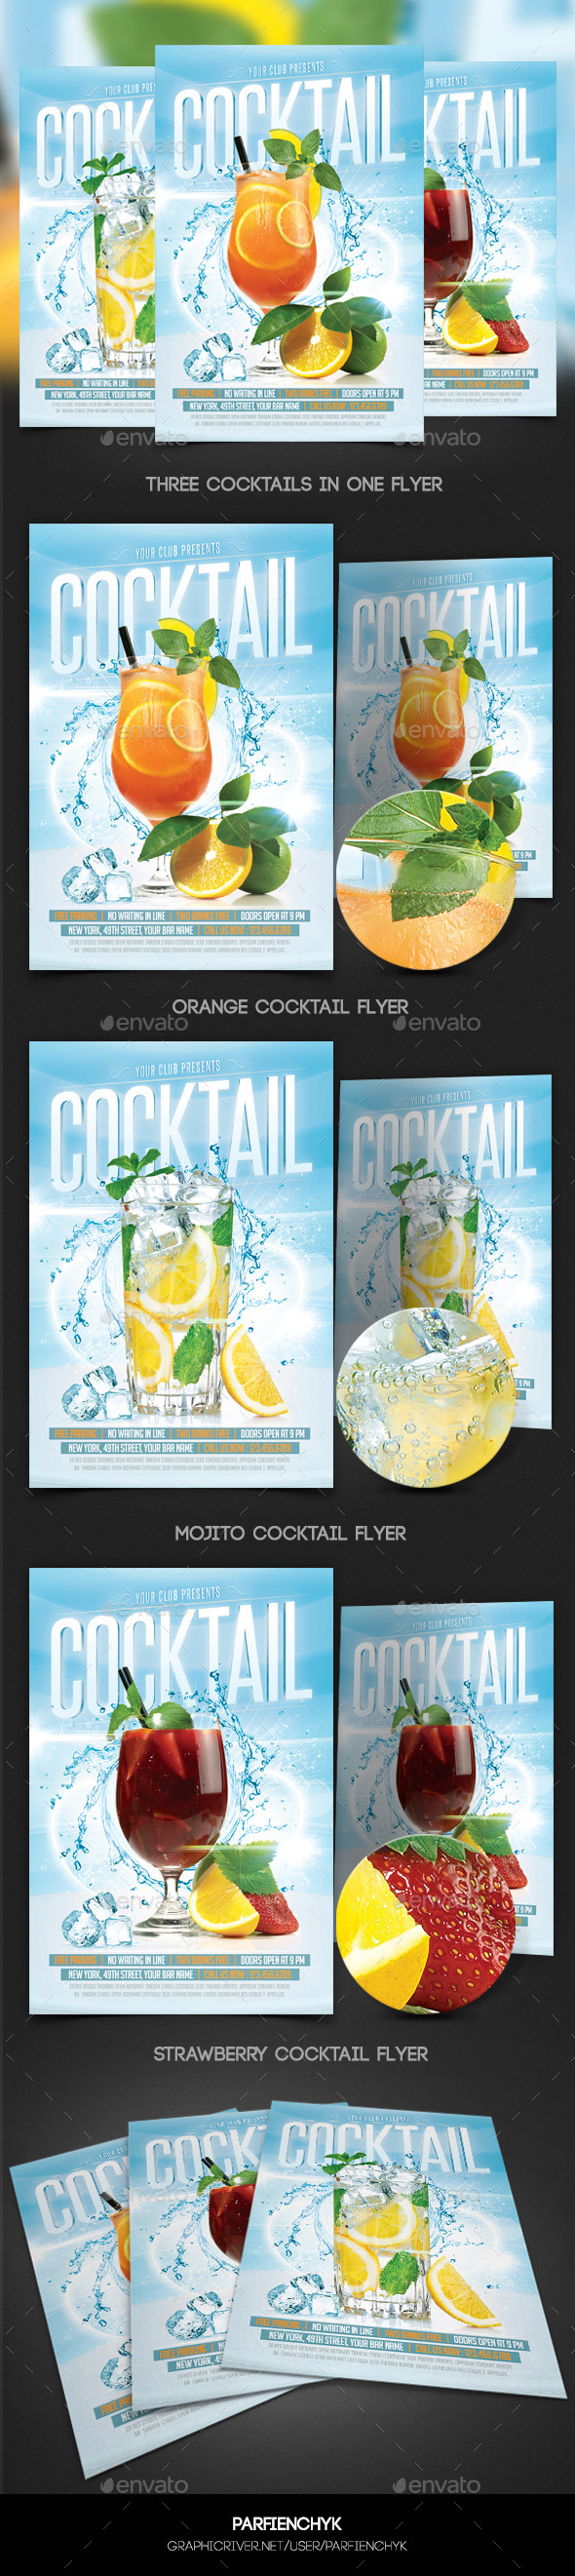 Cocktails Flyer Template